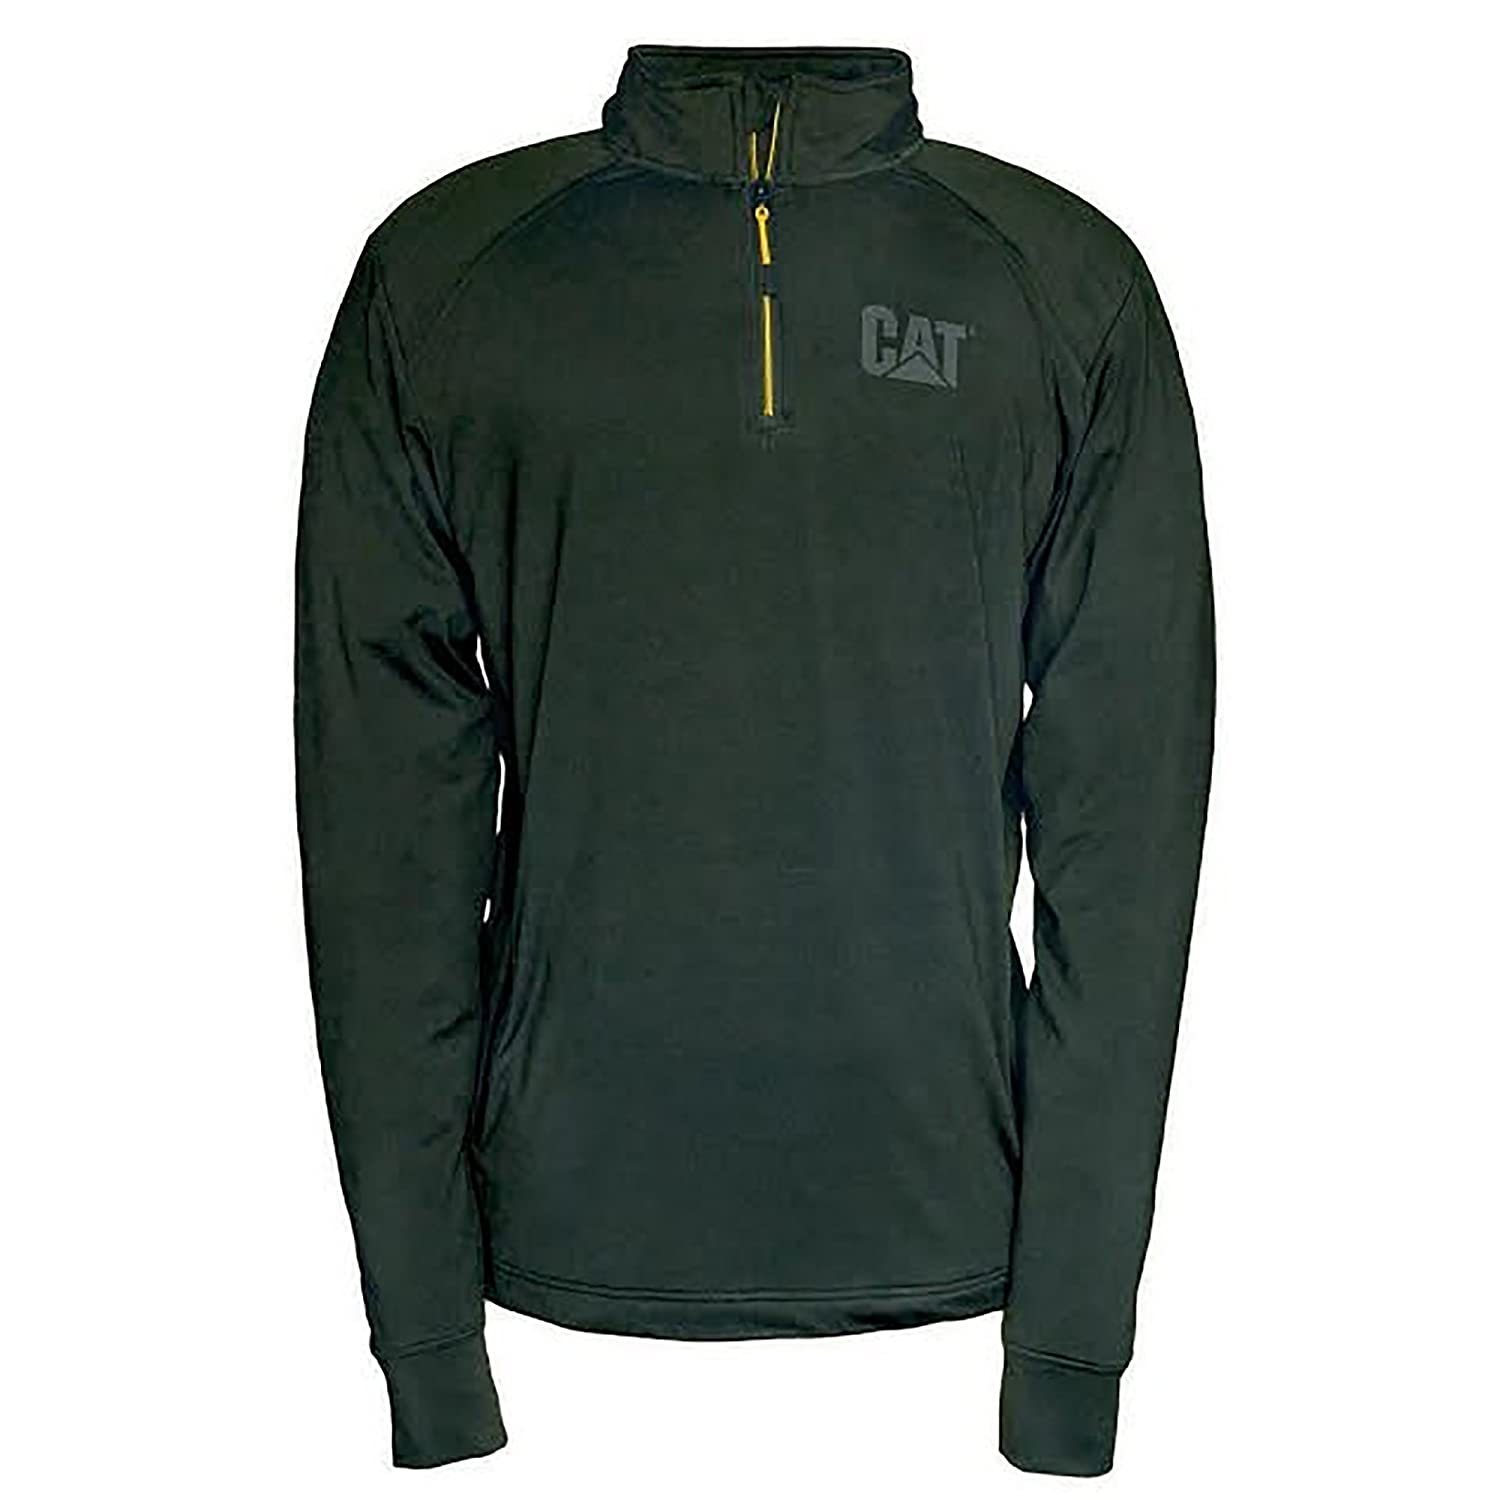 Caterpillar - Contour 1 4 Zip Sweatshirt - EU   UK